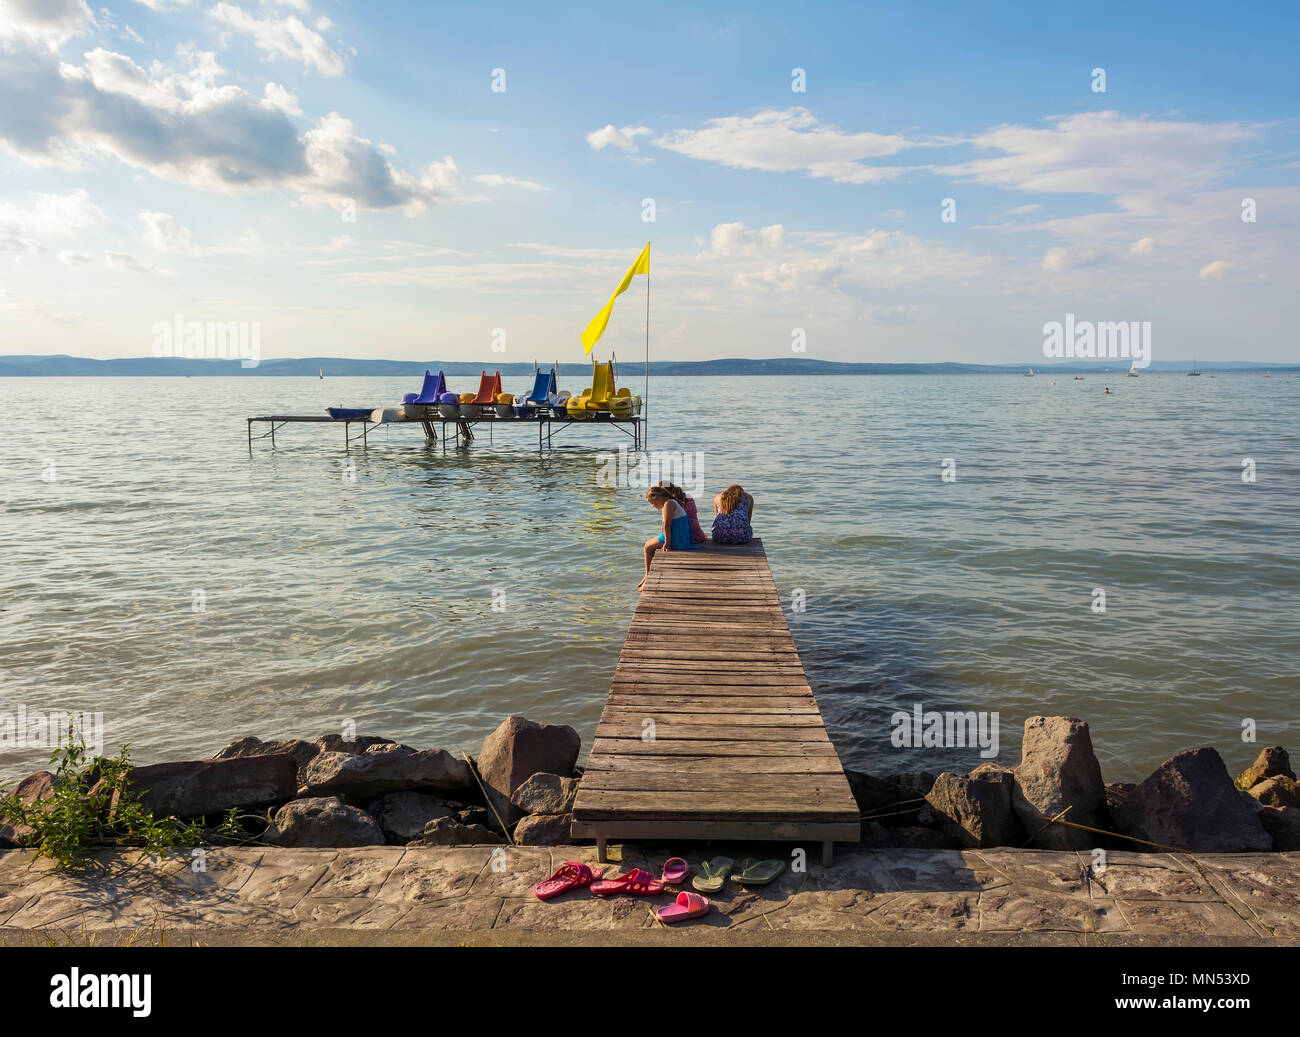 Siófok beach and the Balaton lake in late afternoon light - Stock Image